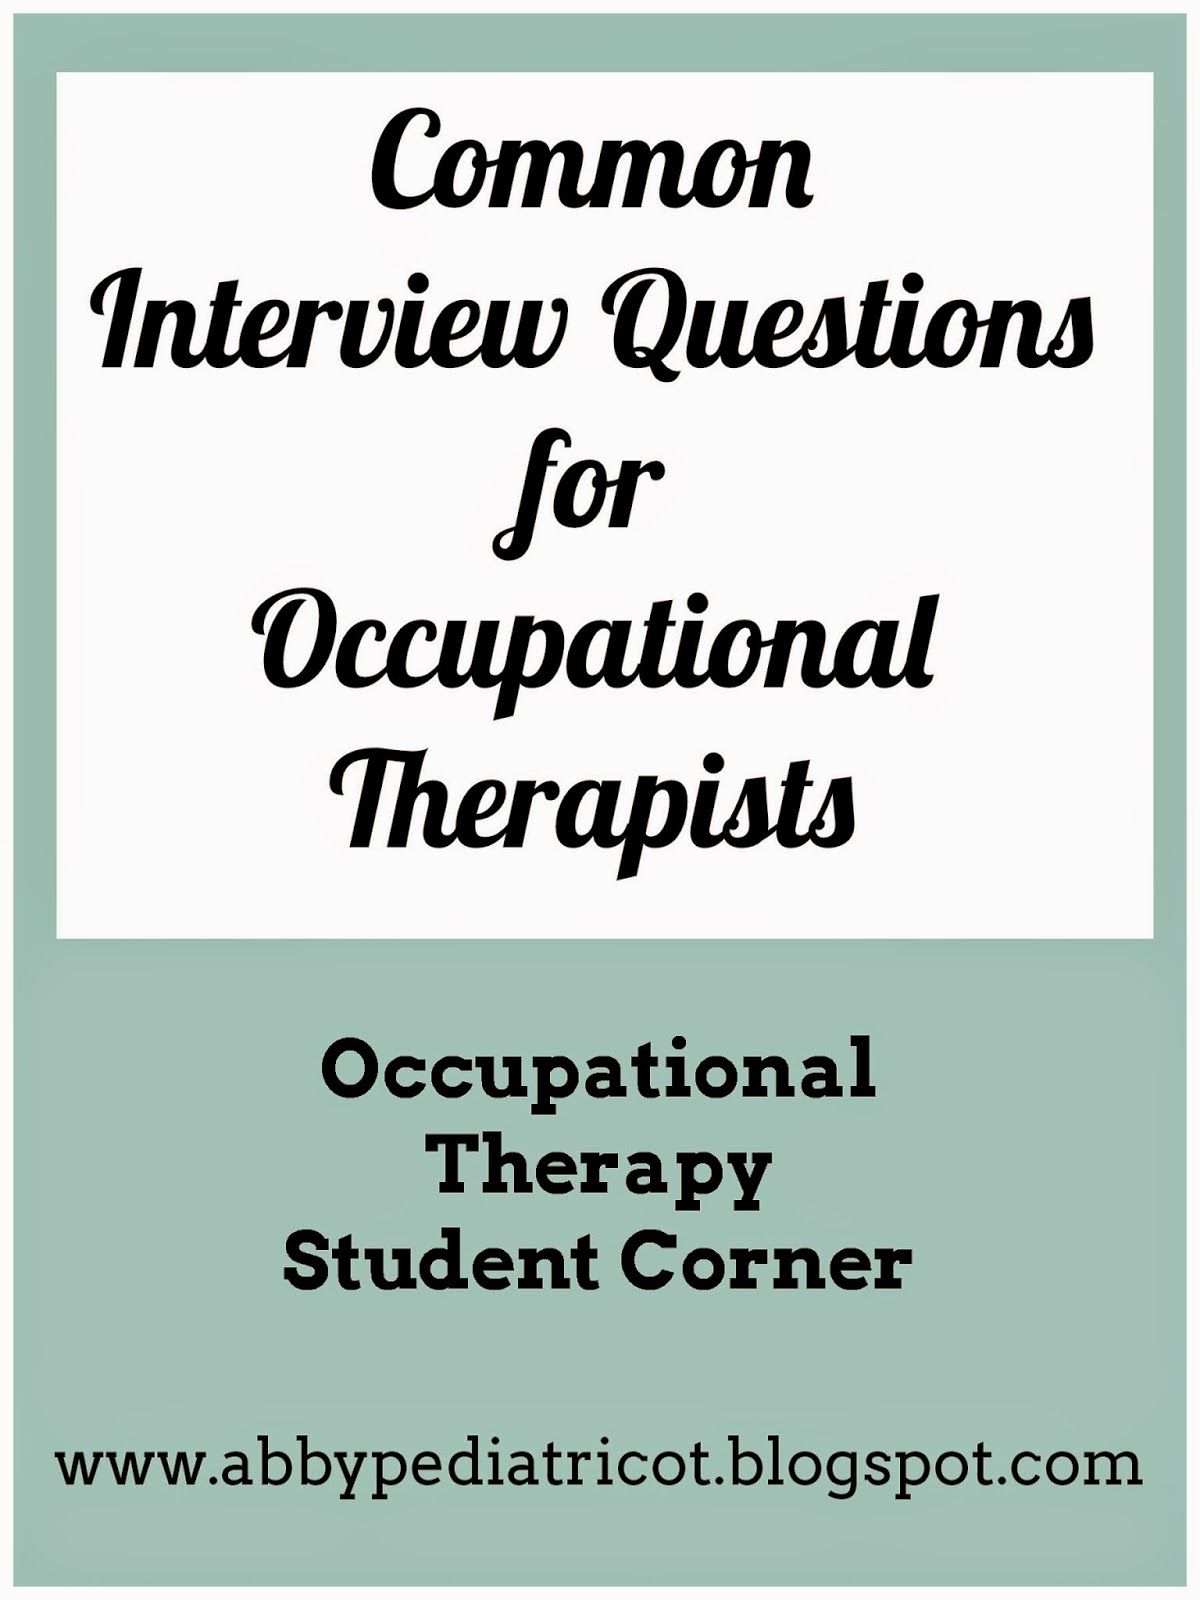 Nail Your Occupational Therapy Job Interview – Occupational Therapy Job Description